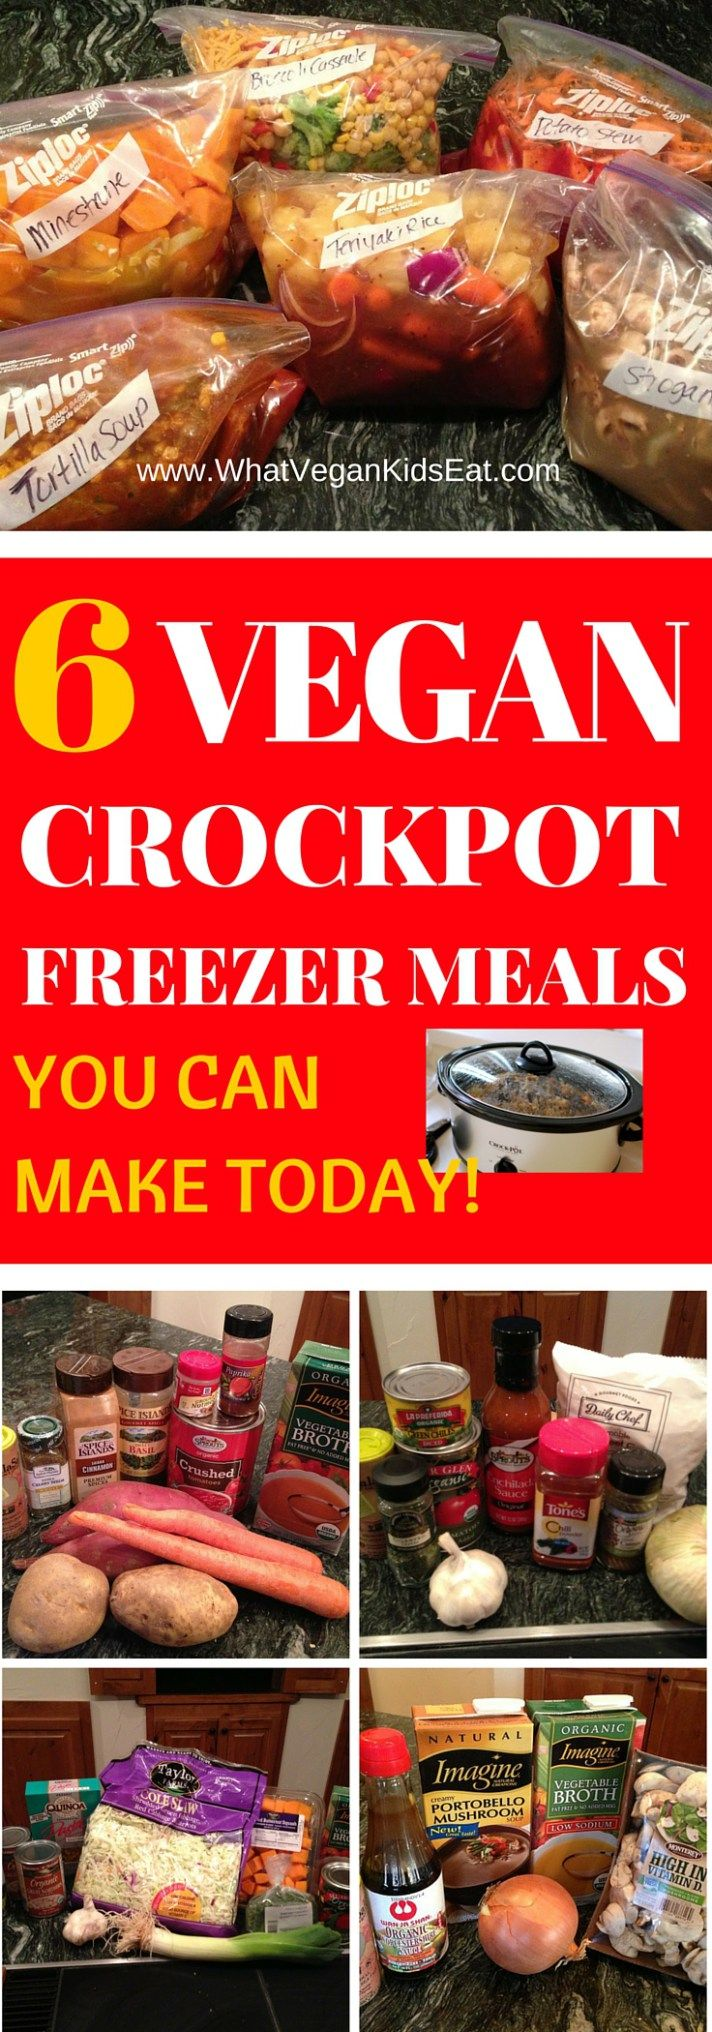 What vegan kids eat - crockpot freezer meals make ahead